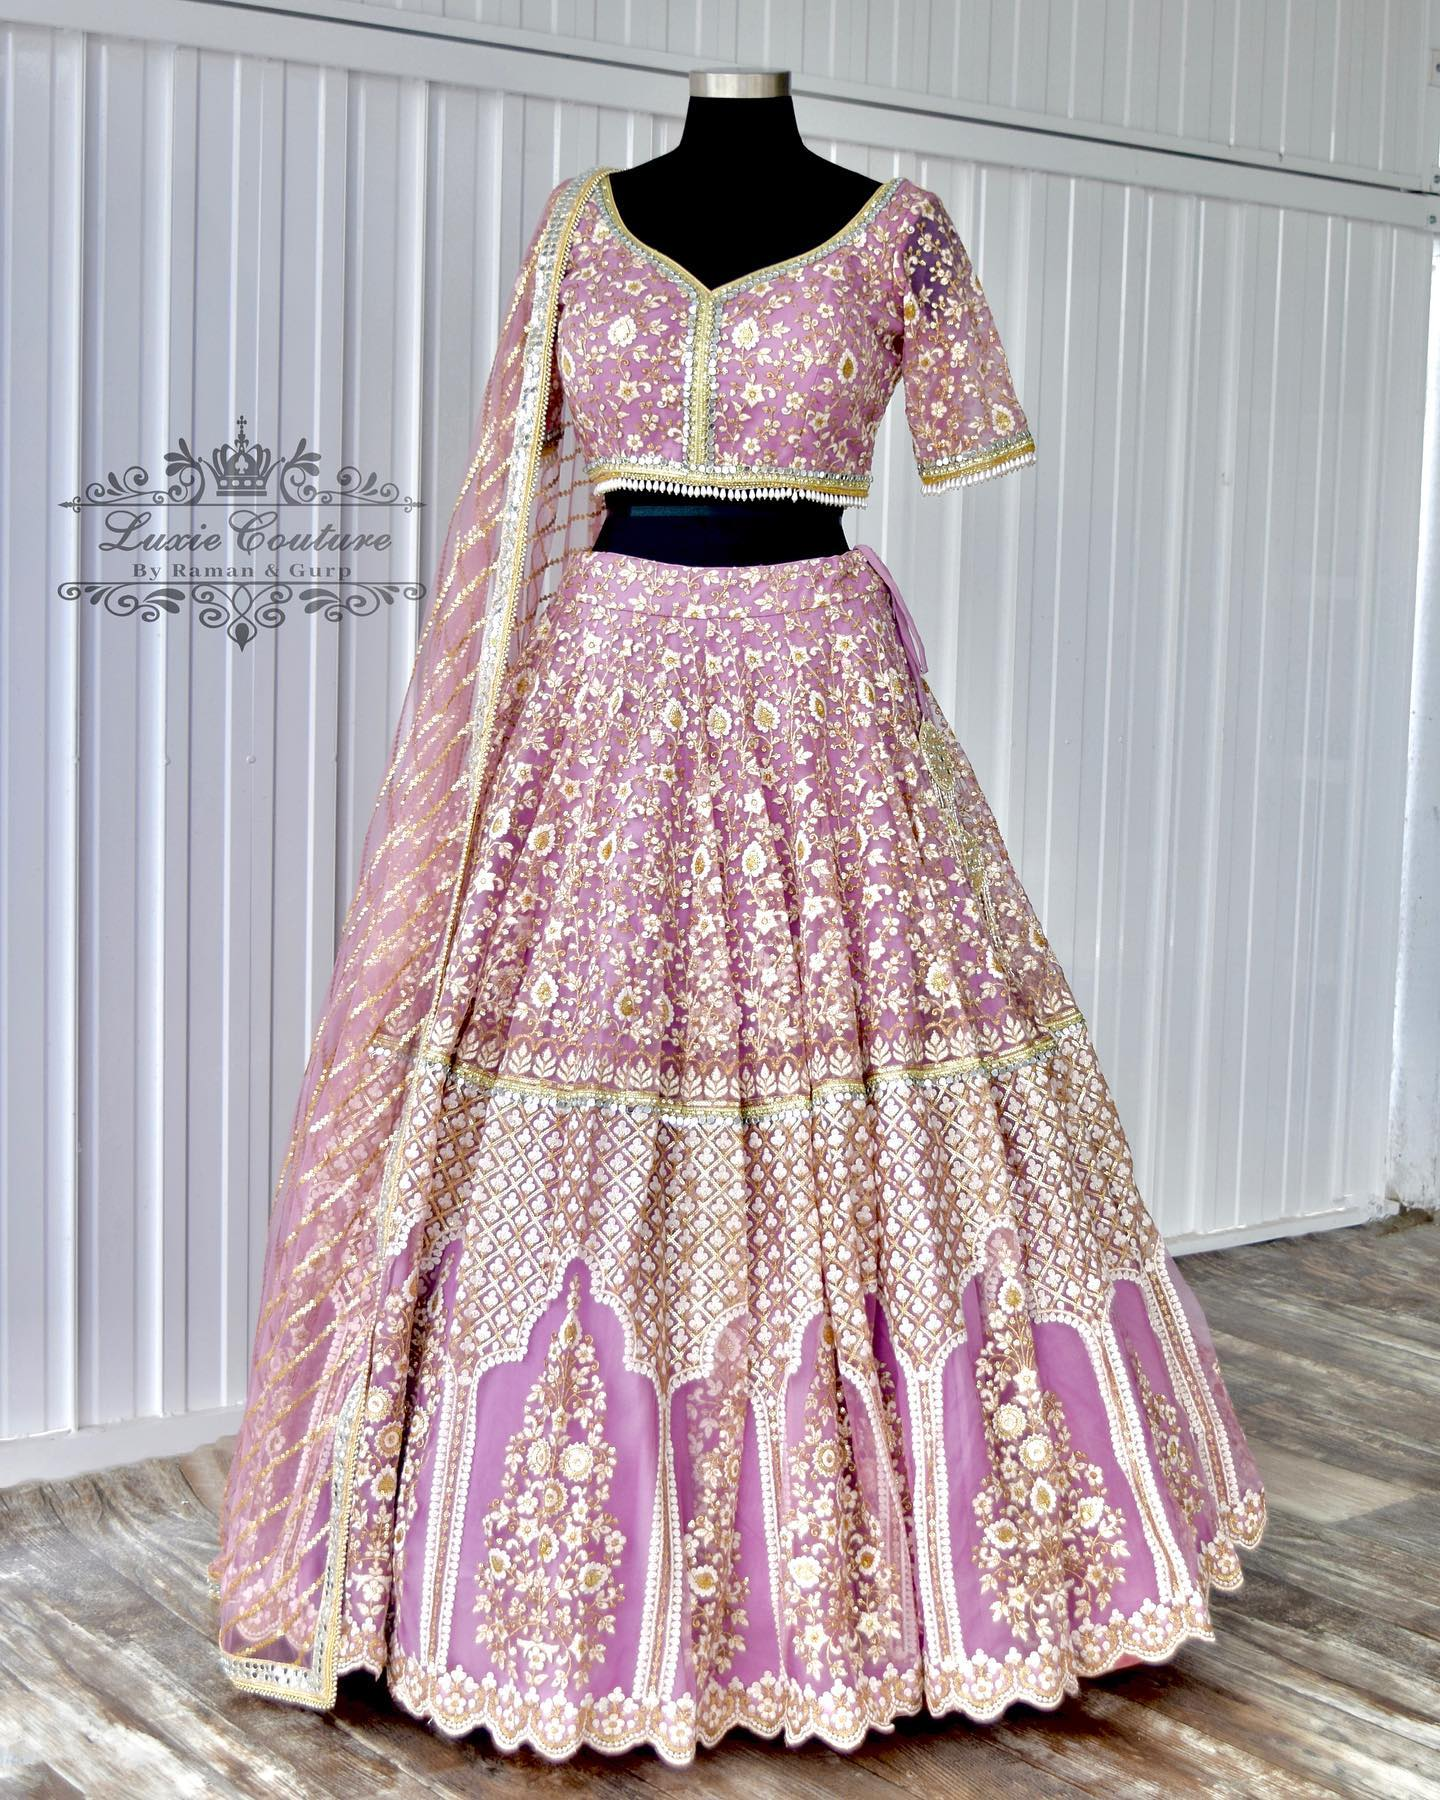 Stunning lavender color bridal lehenga and blouse with classy hand embroidery work.  2021-09-18